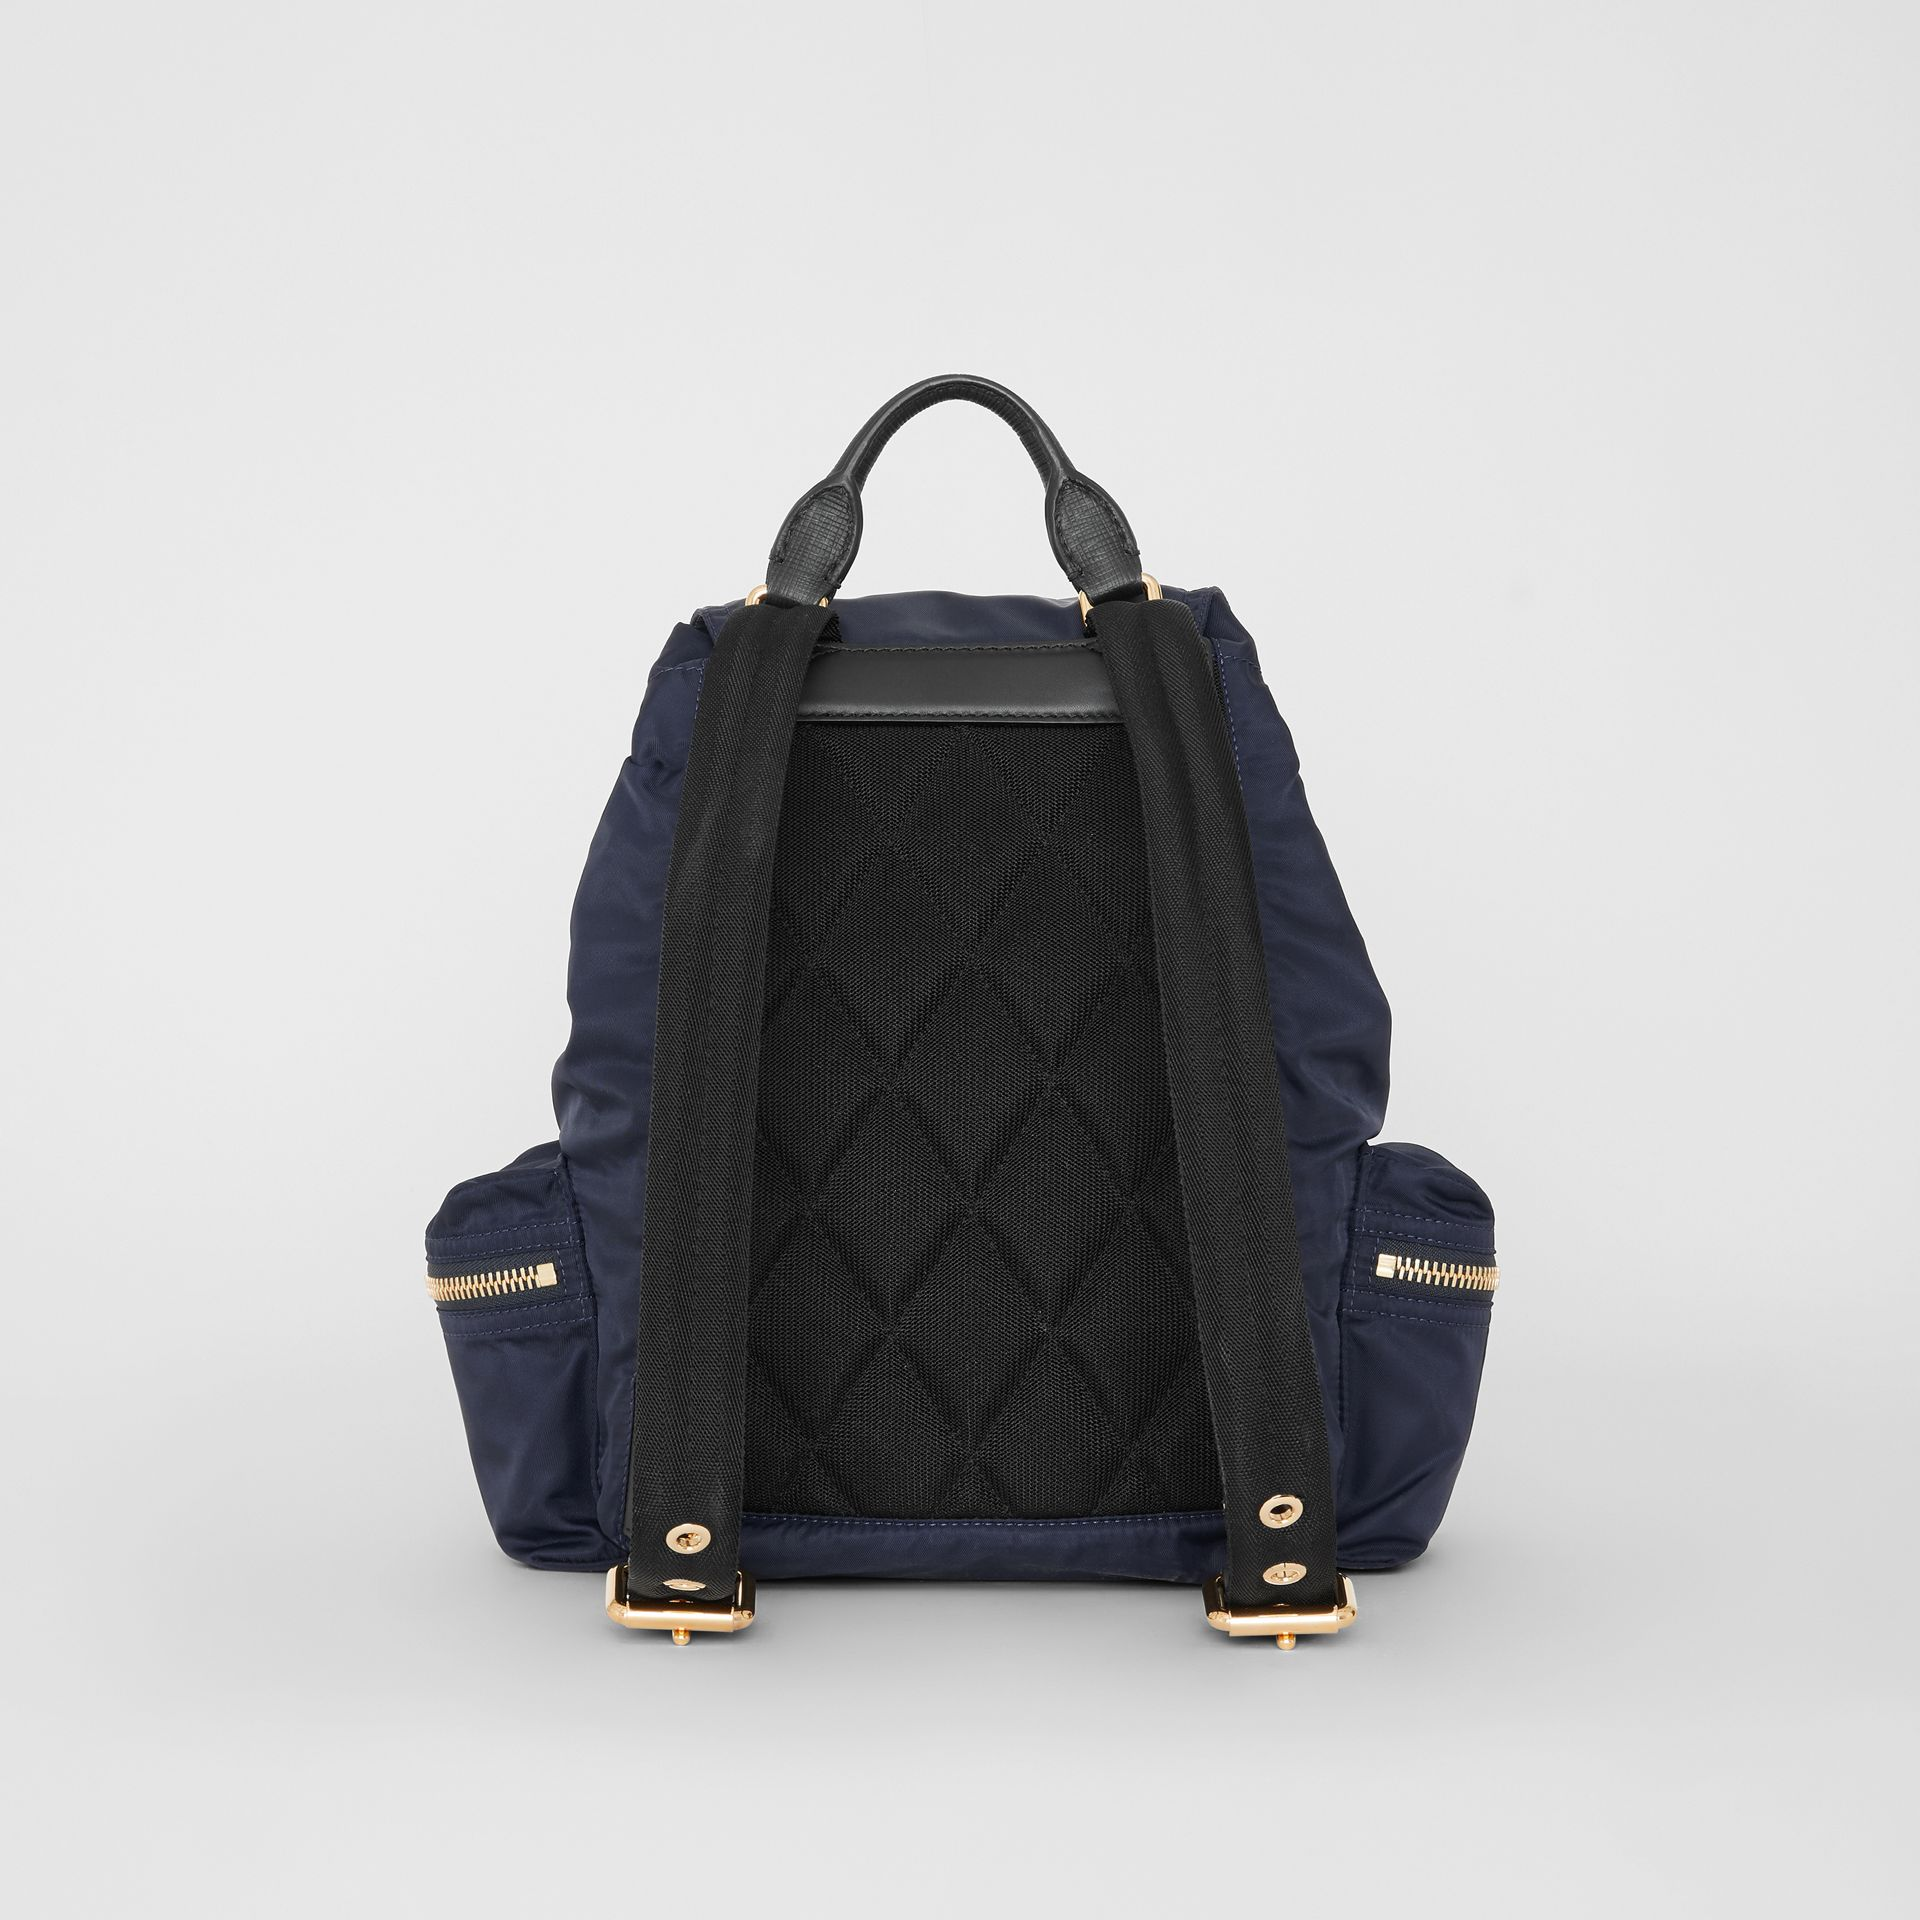 Zaino The Rucksack medio in nylon tecnico e pelle (Blu Inchiostro) - Donna | Burberry - immagine della galleria 11